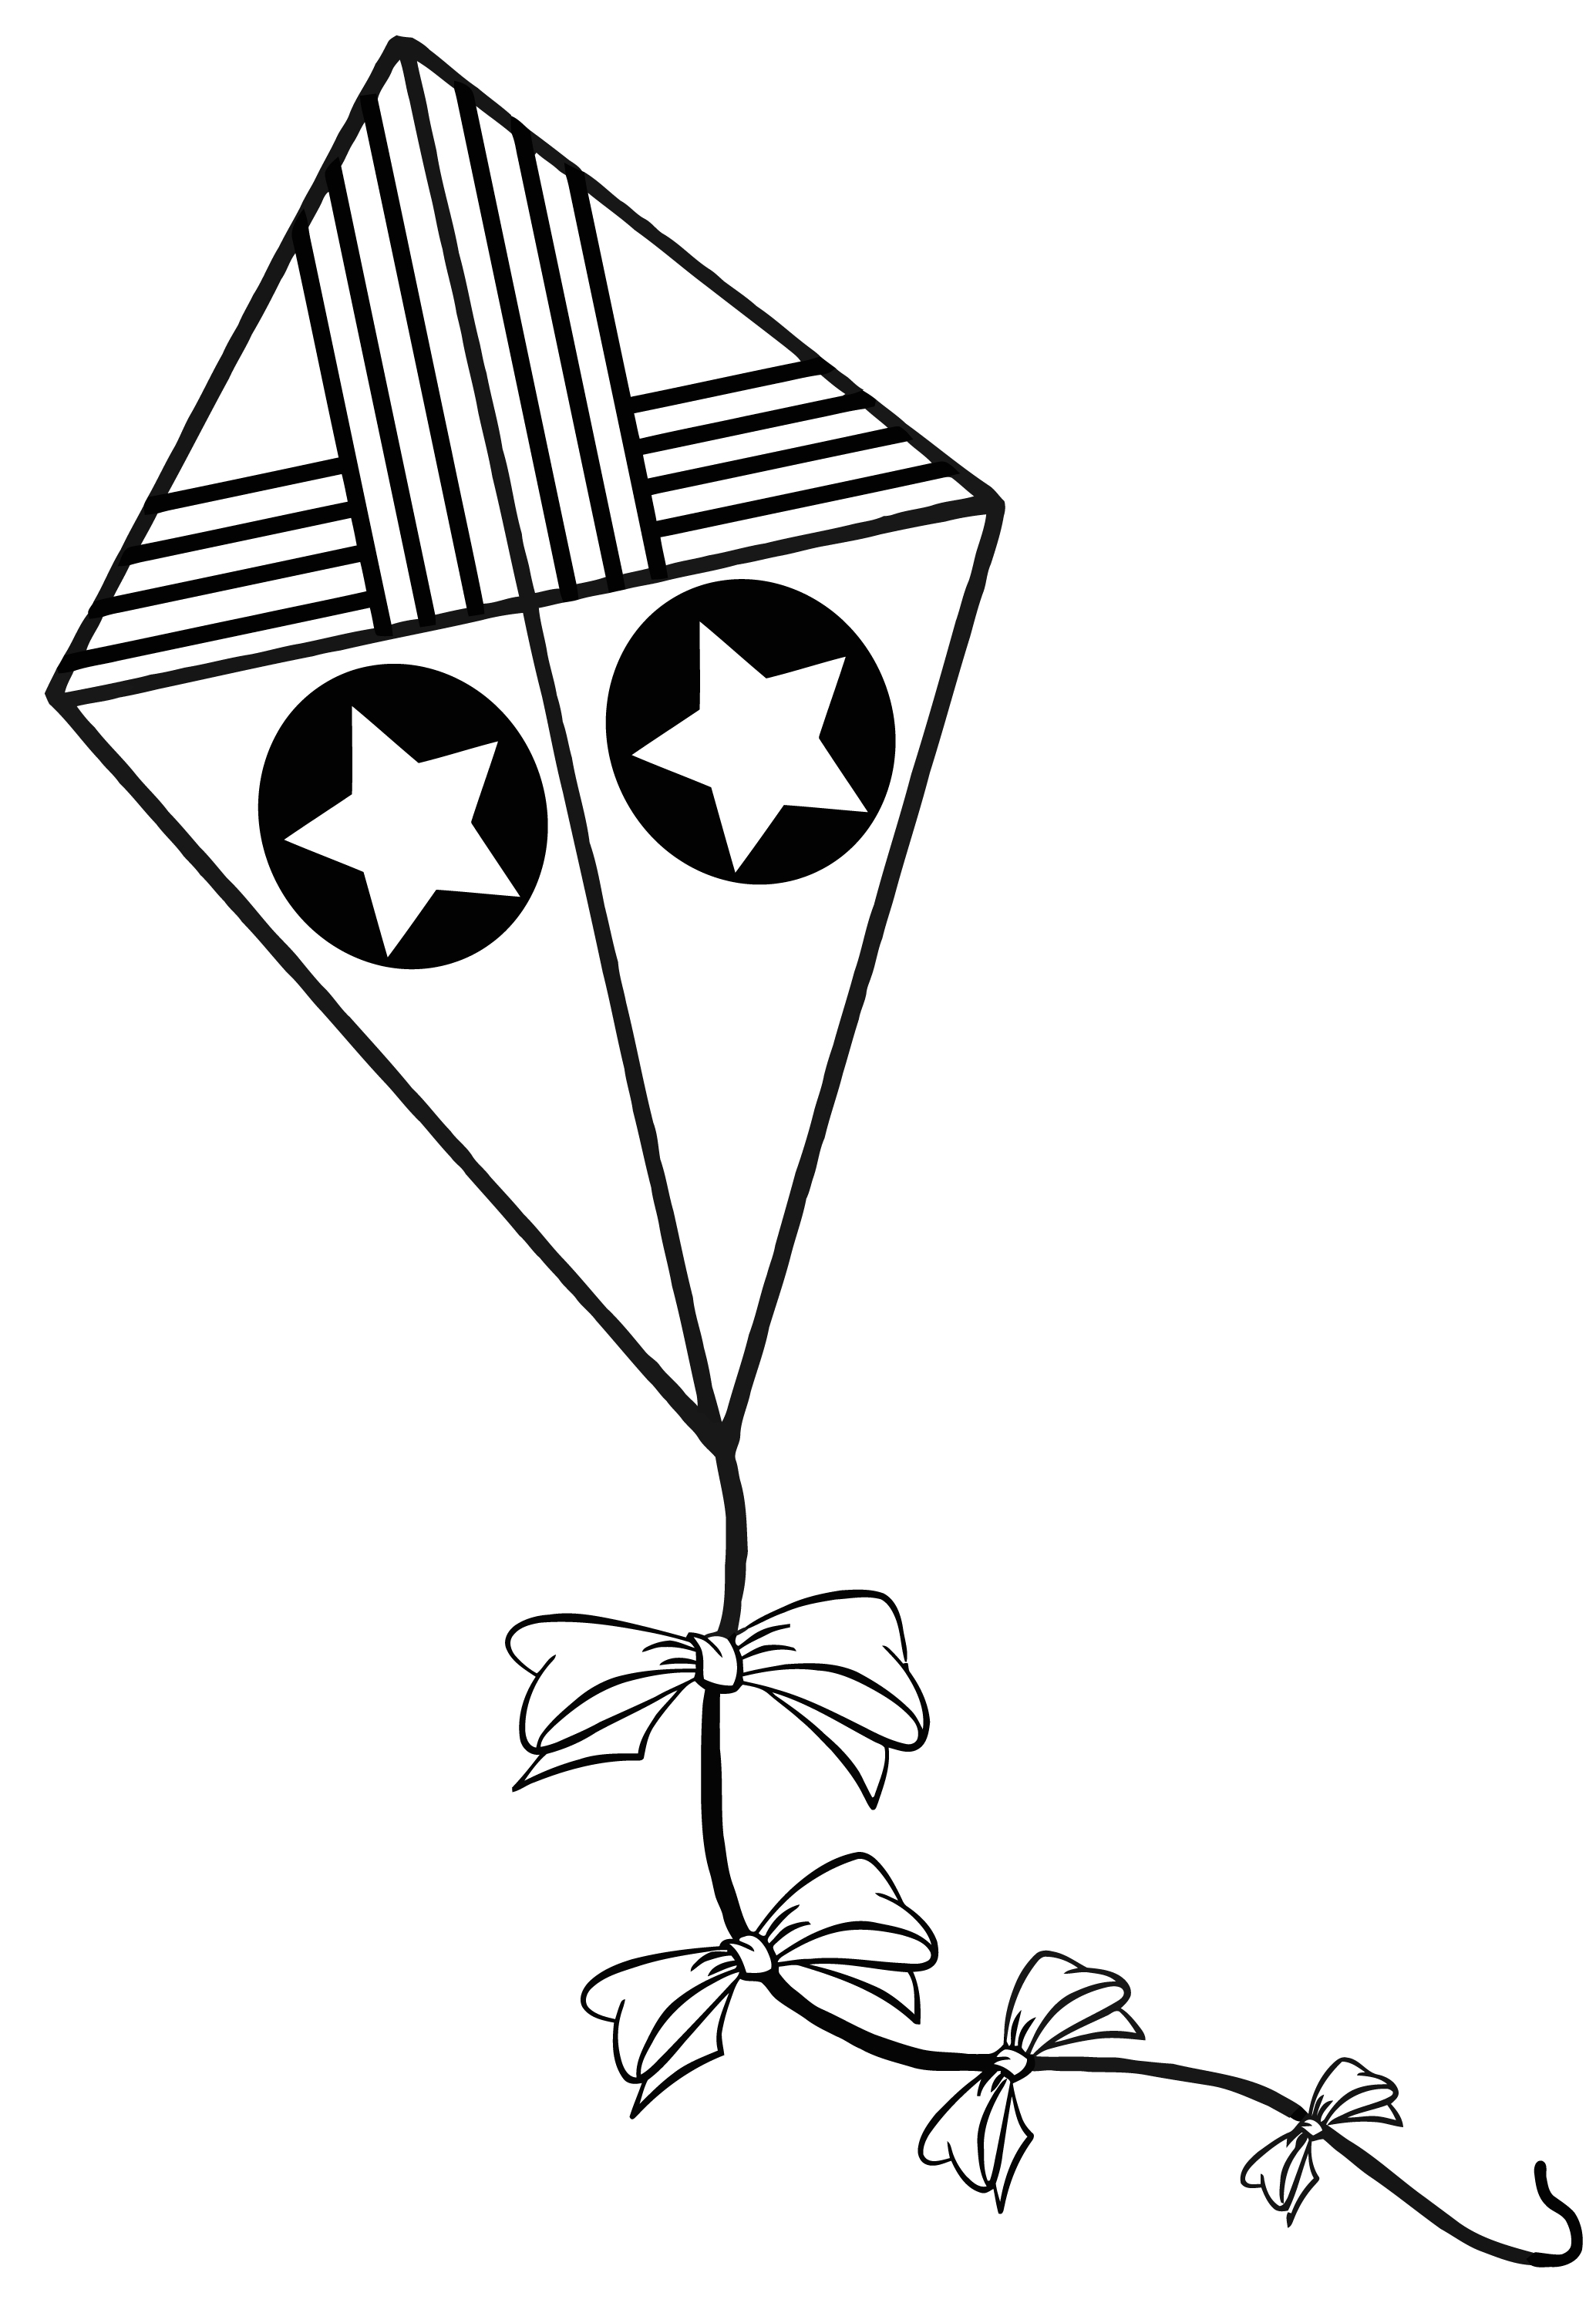 Line Art Kite : Kite coloring pages clipart panda free images